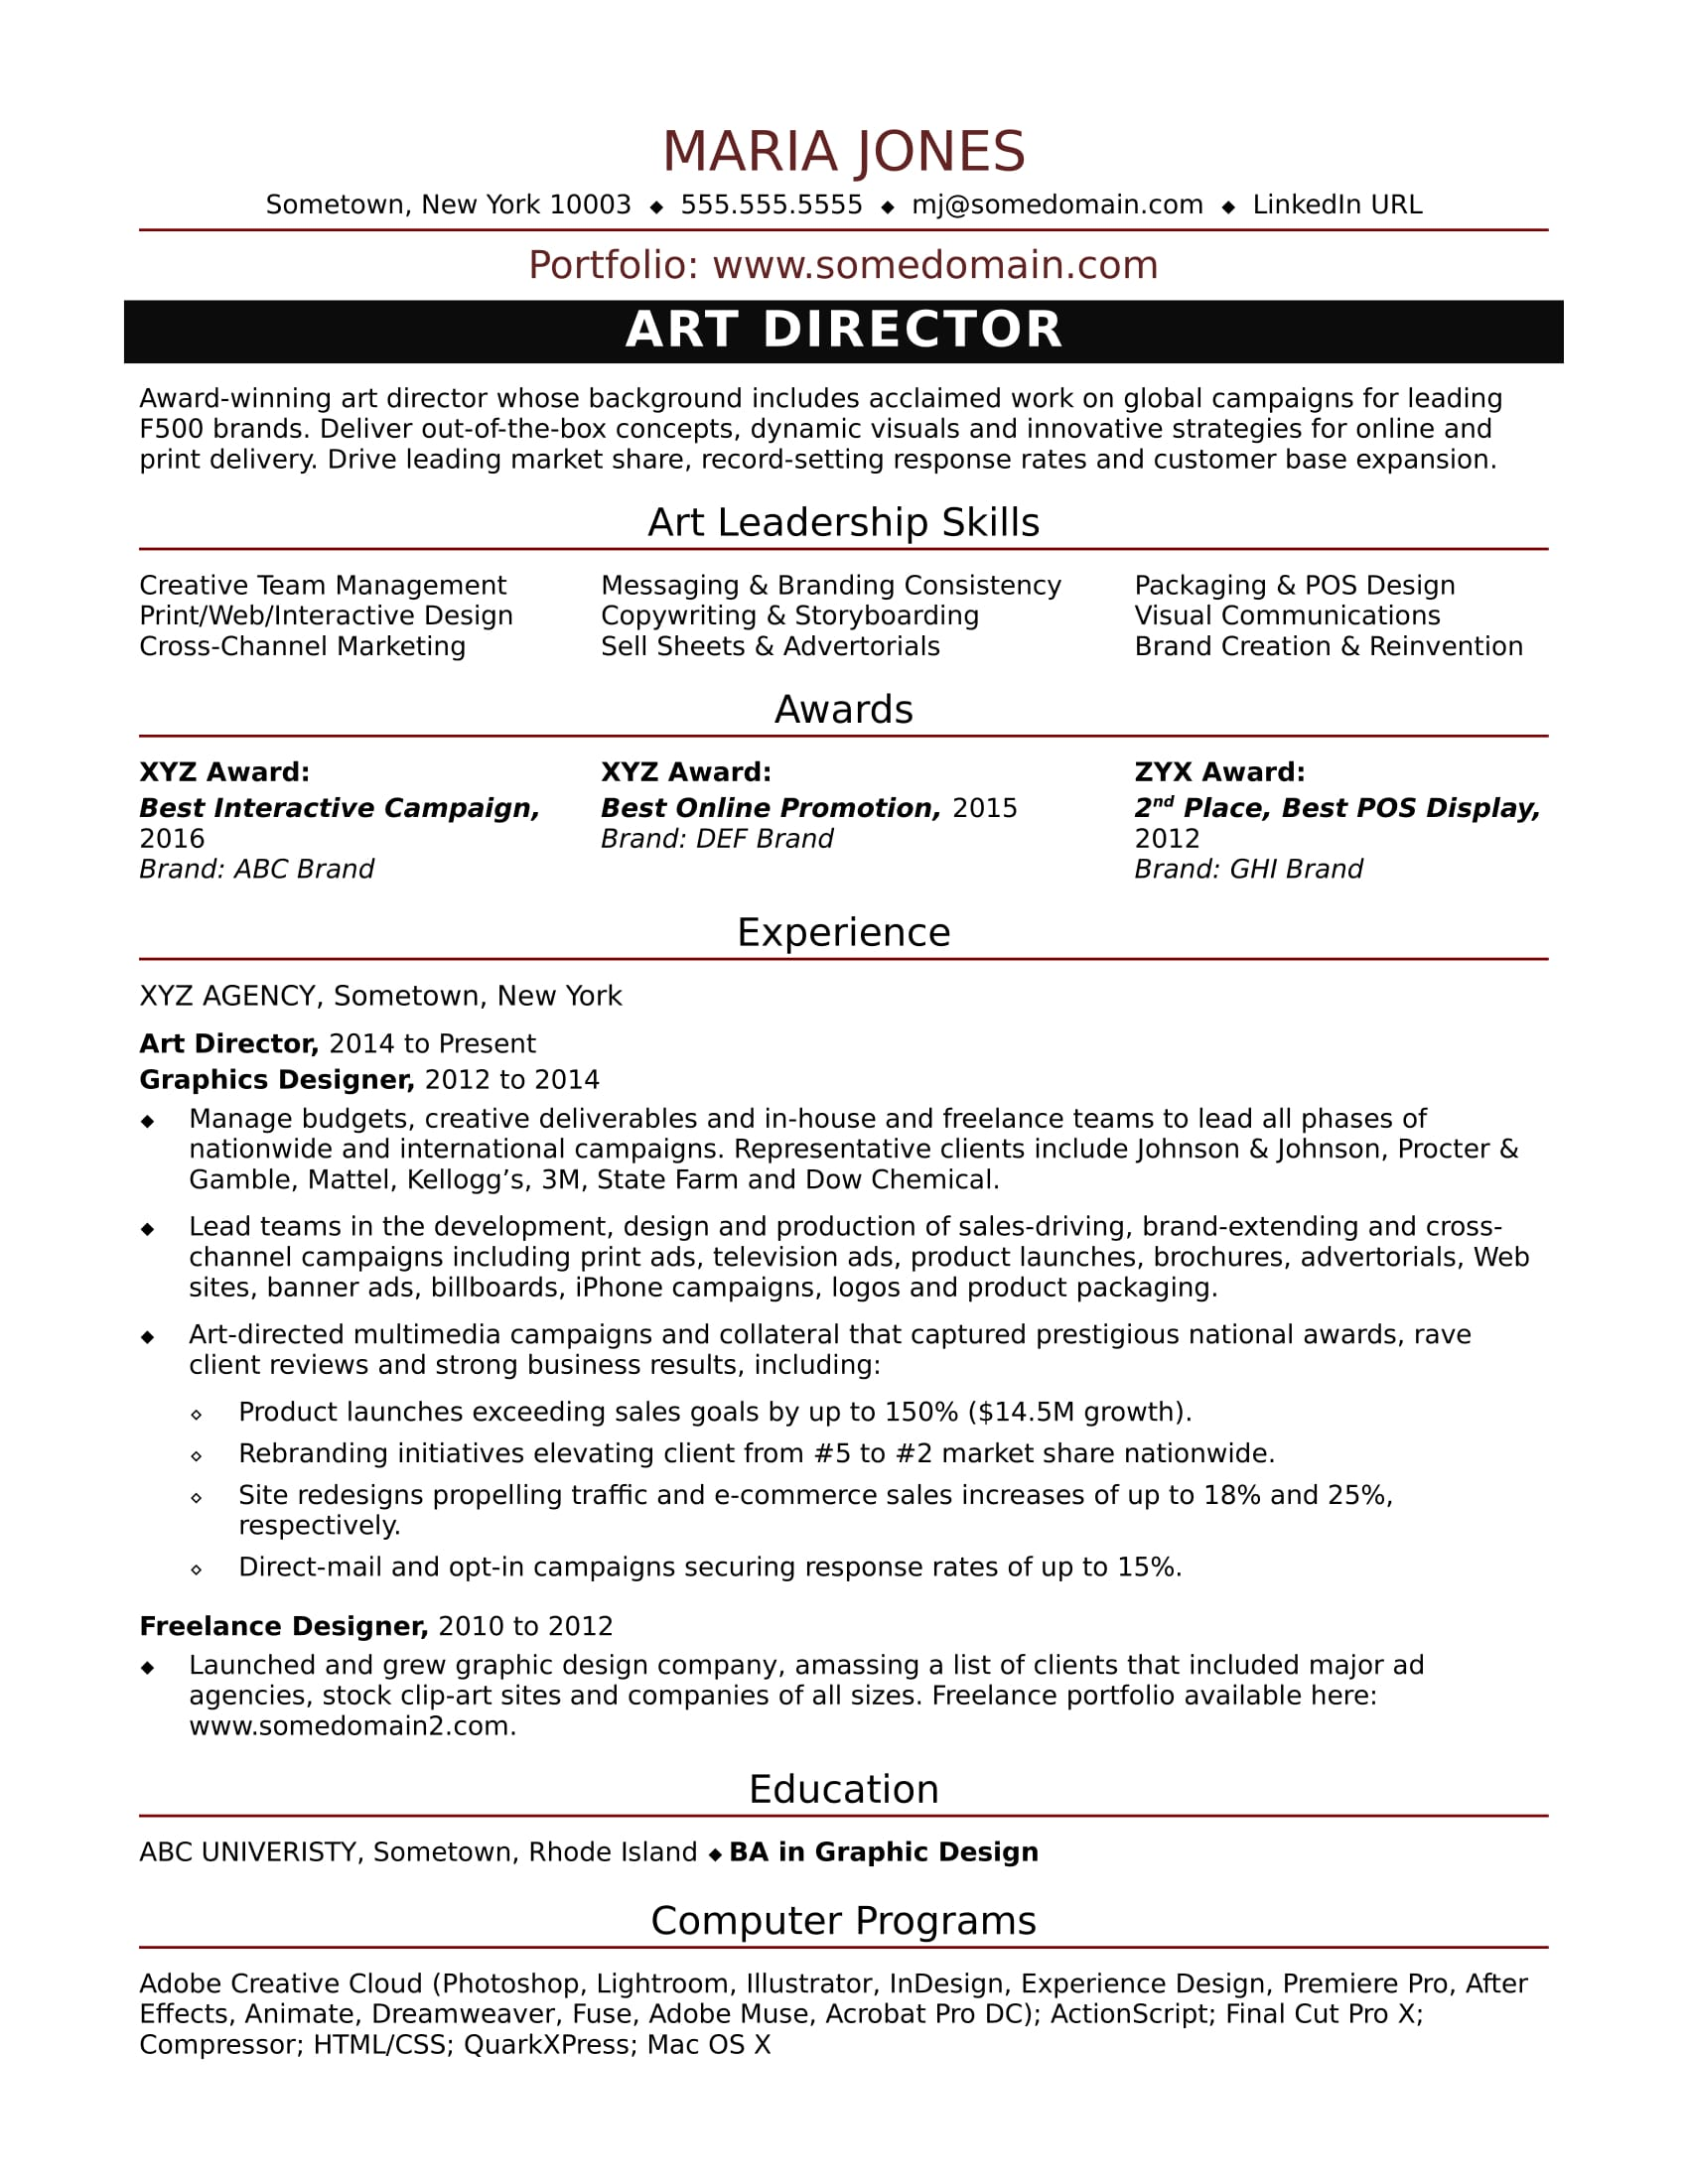 Sample Resume For A Midlevel Art Director  Director Level Resume